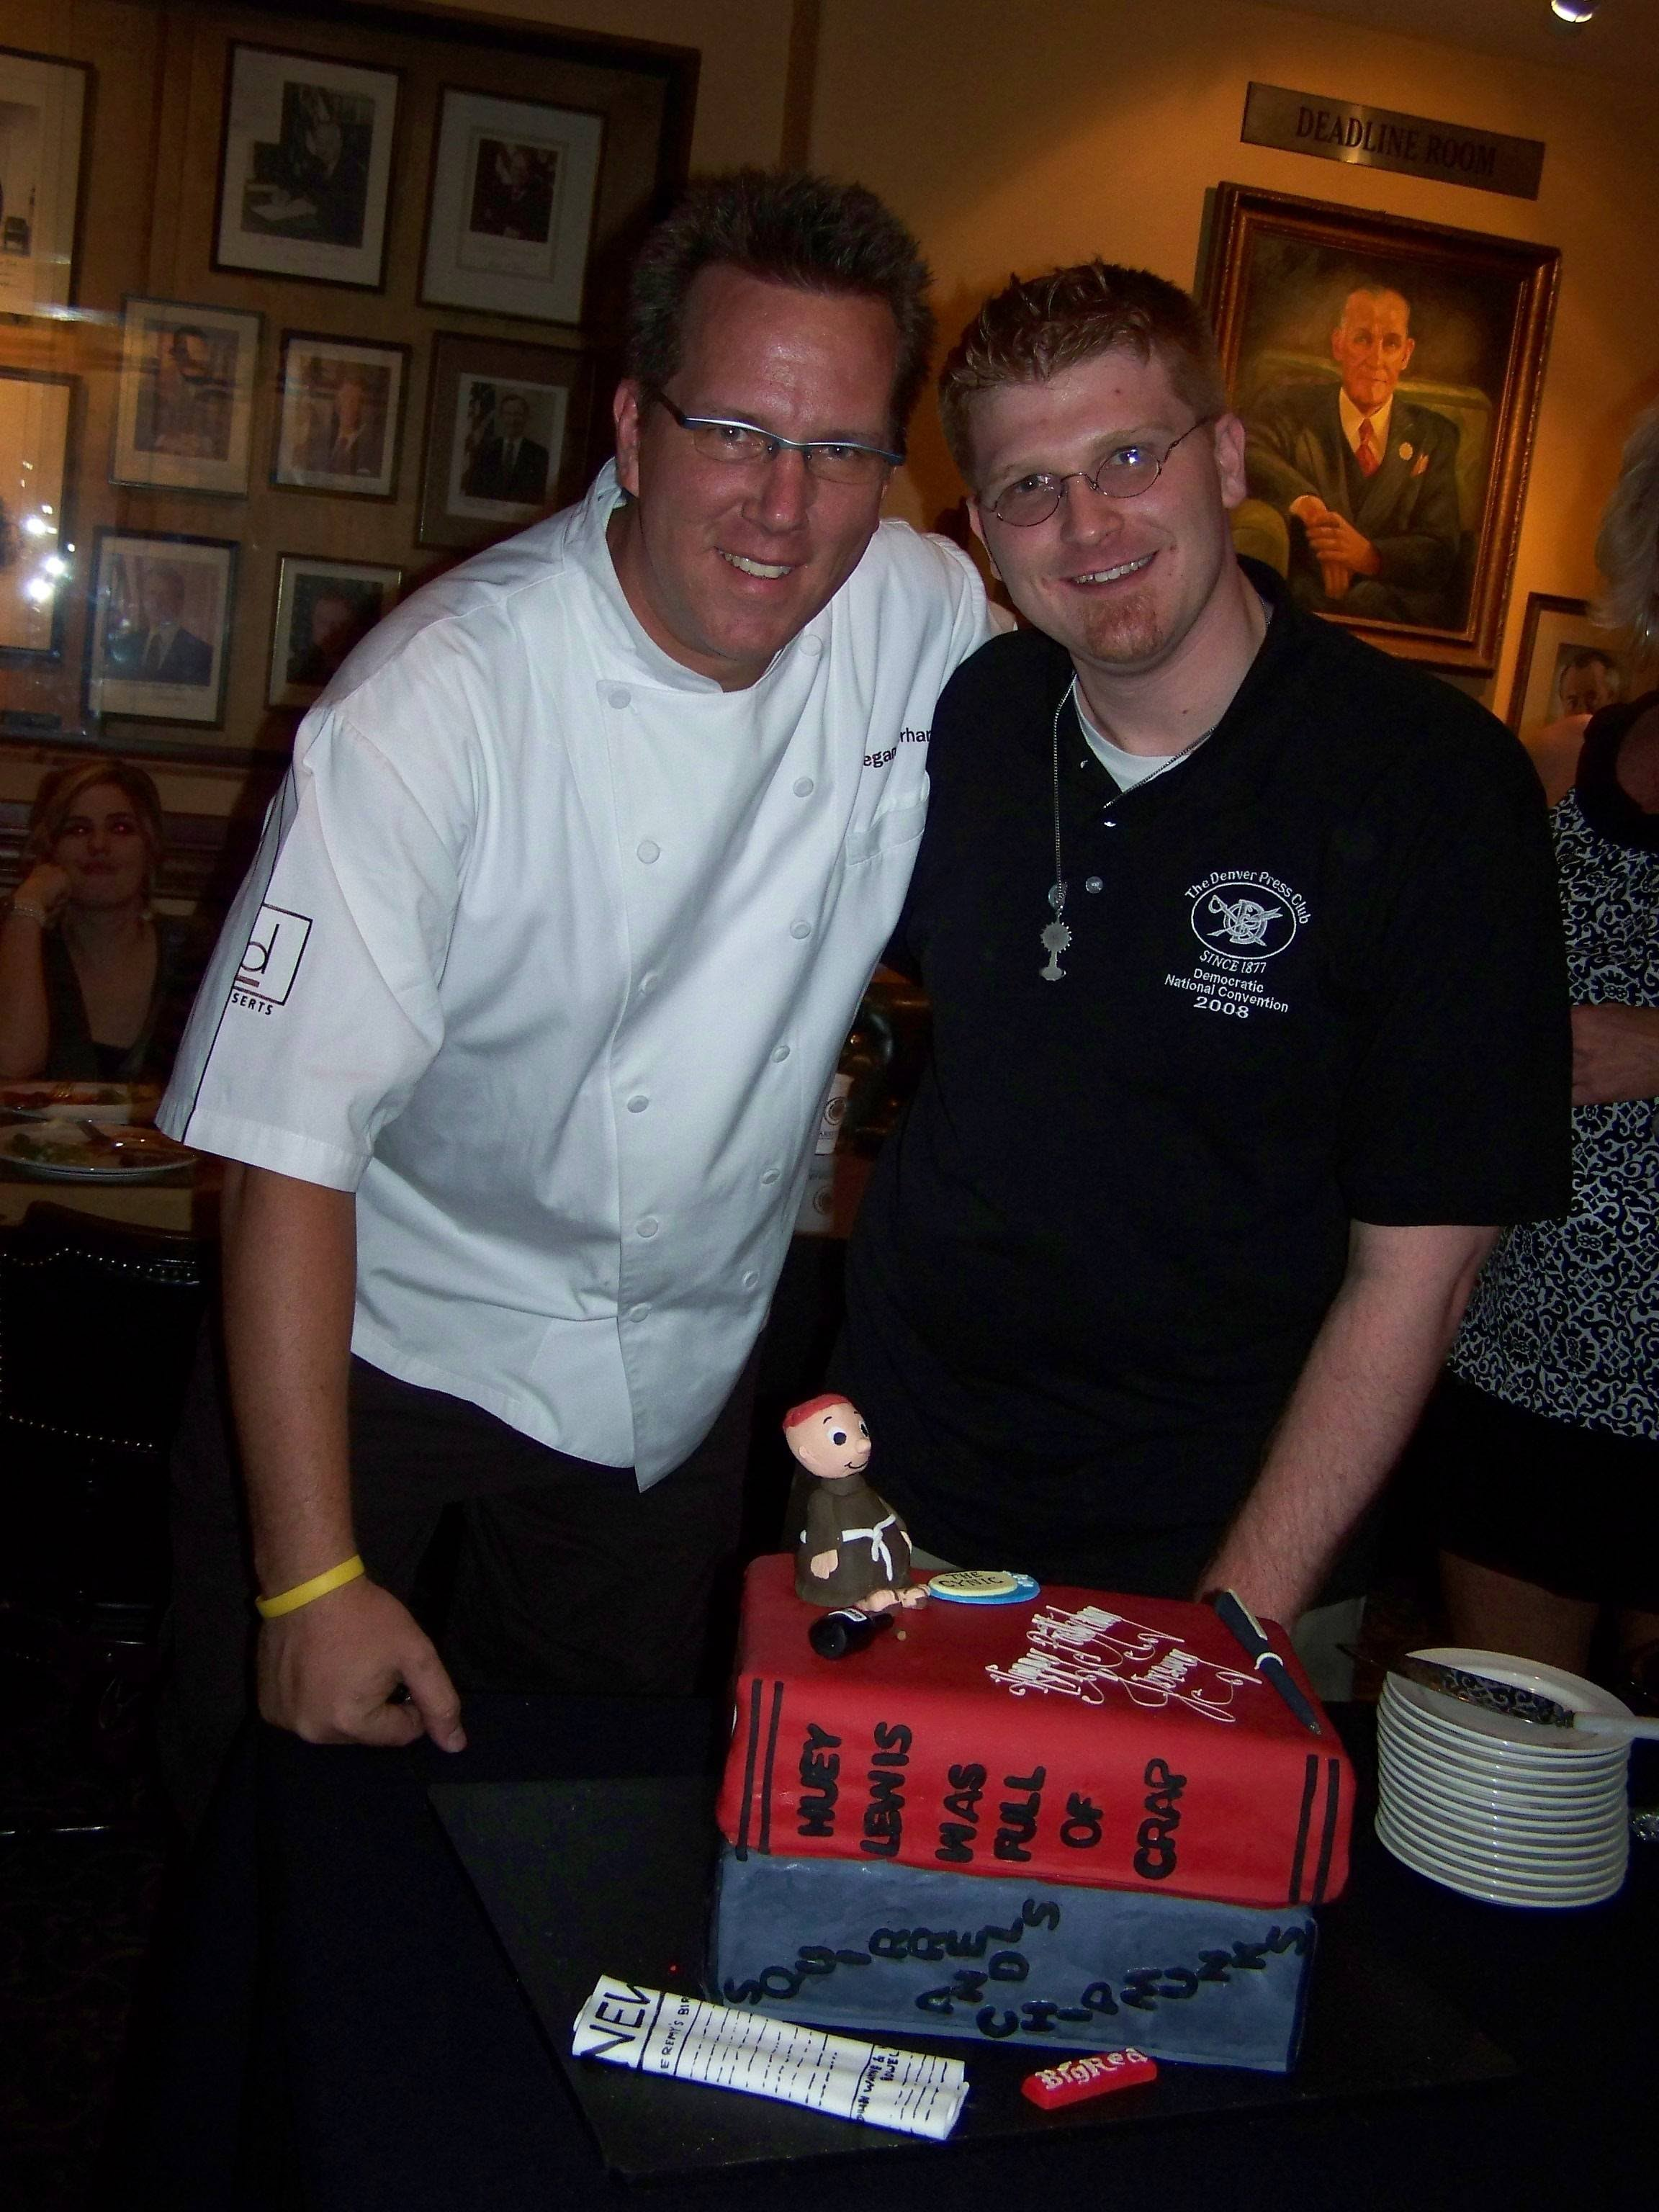 On August 29th, 2008, Jeremy's Friends And Family Gathered At The Denver  Press Club For A Happy Hour And Dinner To Celebrate Jeremy's Birthday